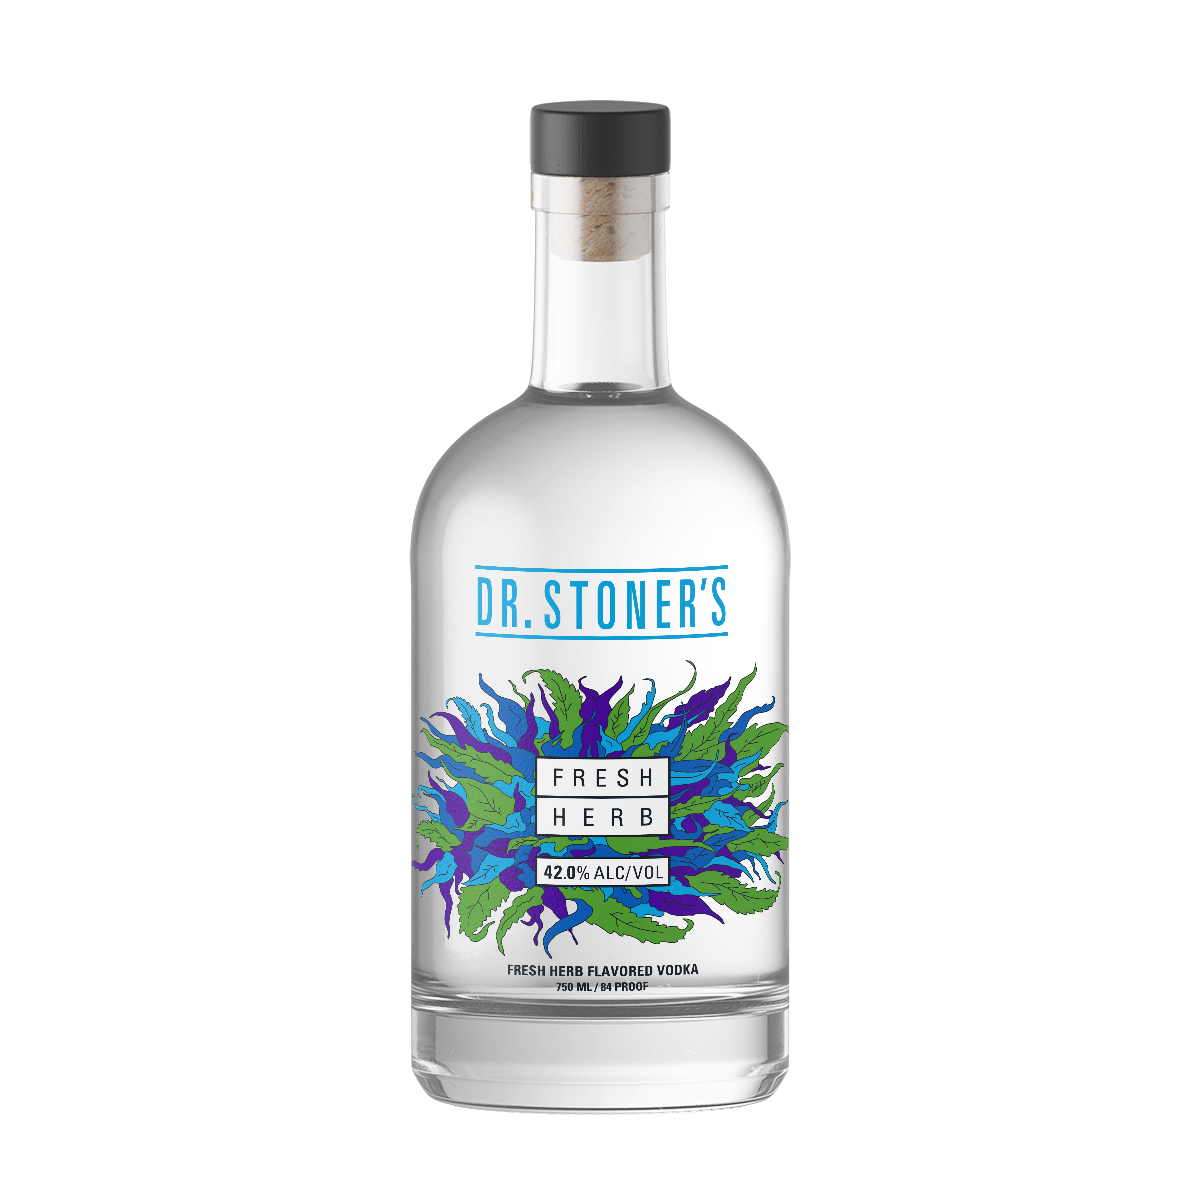 Dr. Stoner's Fresh Herb Spirit Vodka